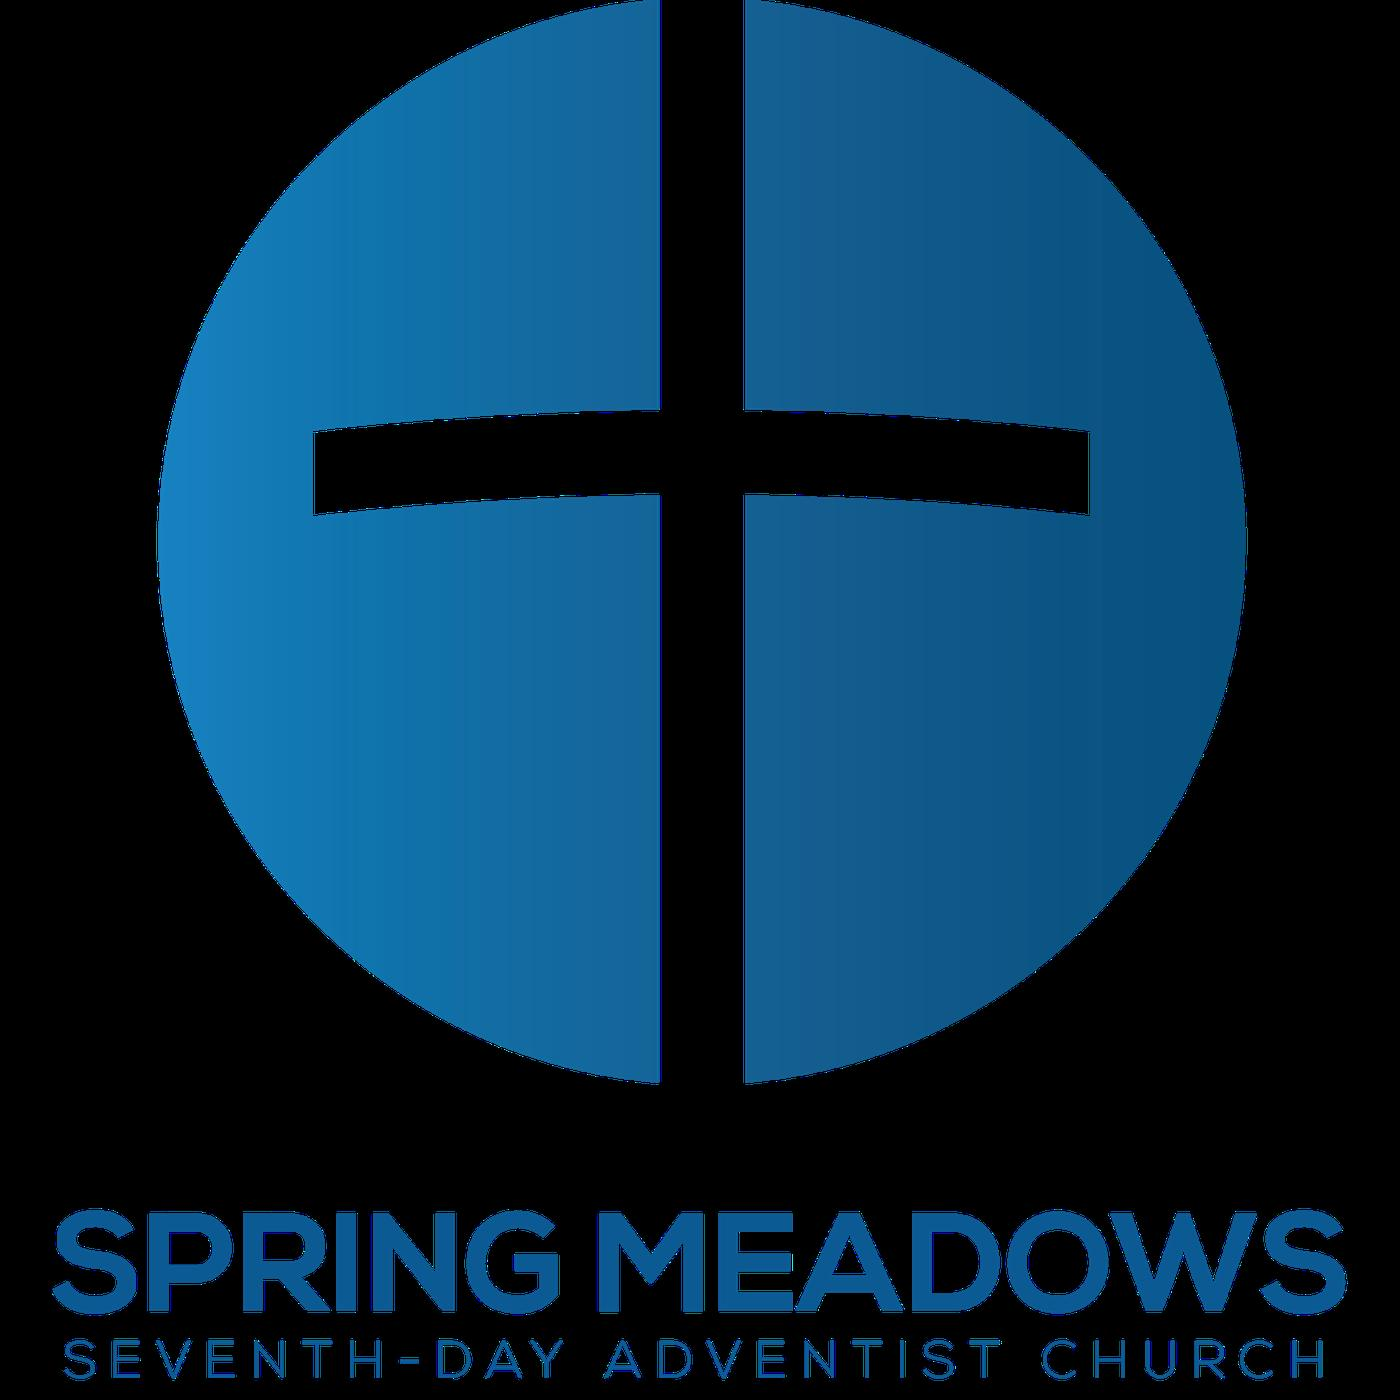 Spring Meadows Seventh-day Adventist Church Sermons (A Place to